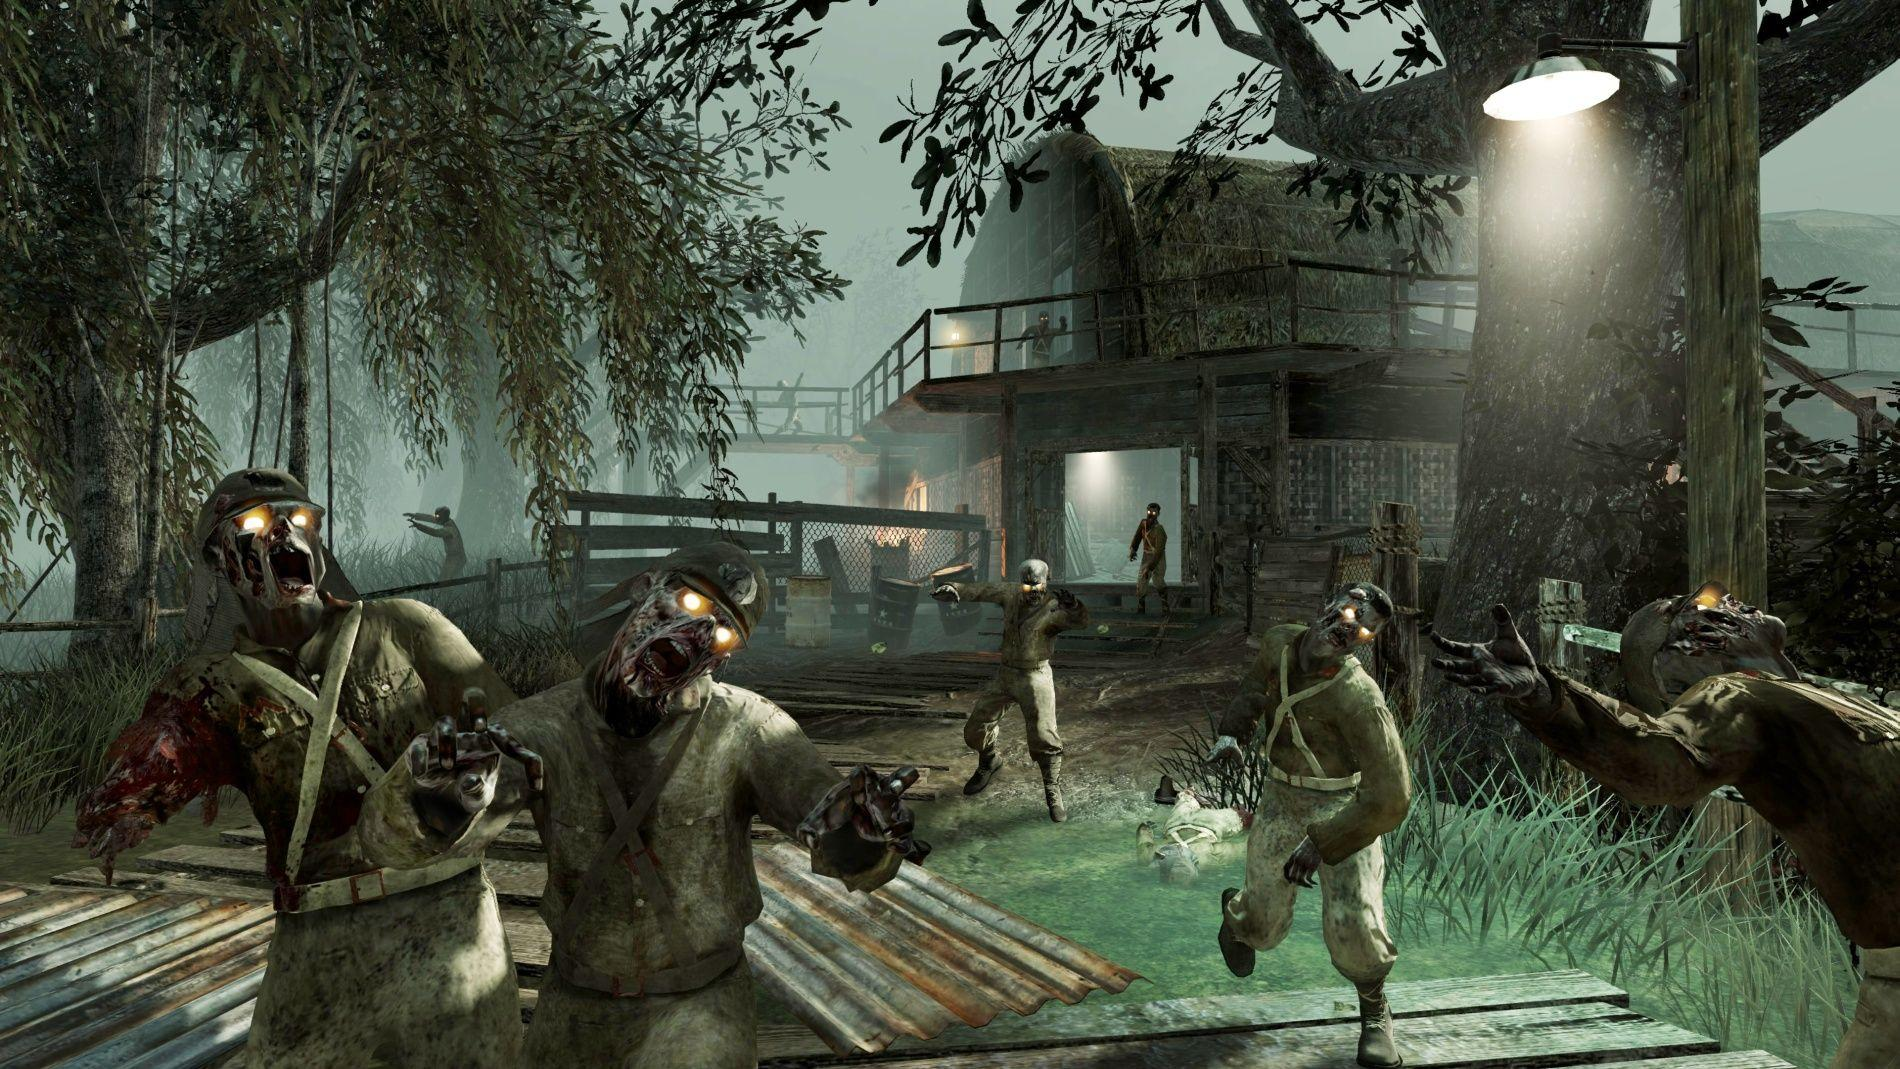 Call Of Duty: Black Ops Zombies Wallpapers - Wallpaper Cave